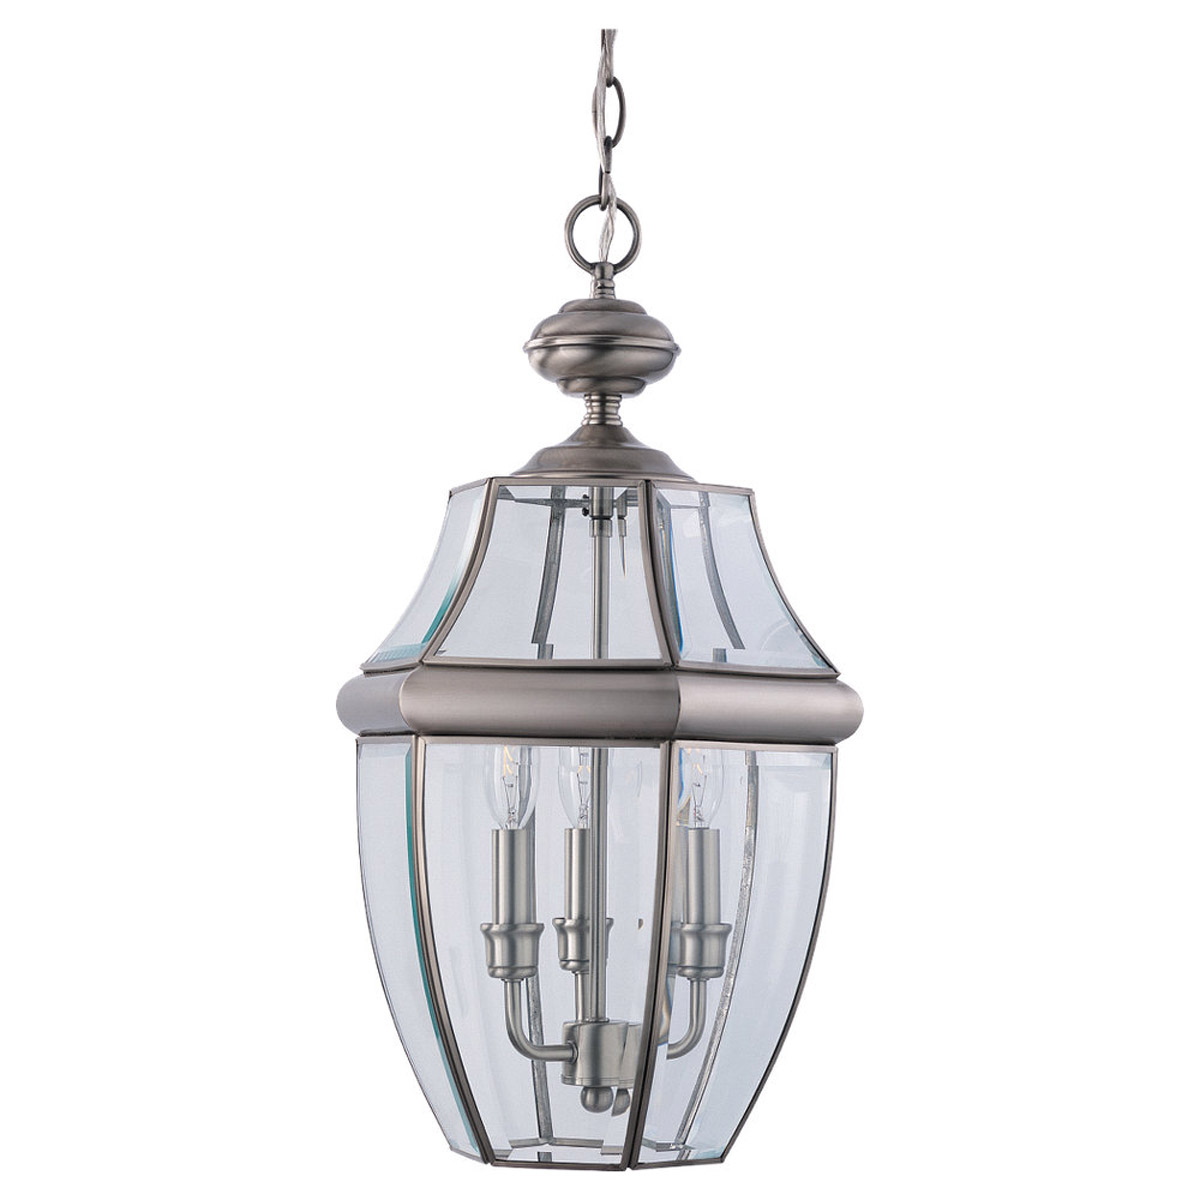 Sea Gull 6039-965 Lancaster 3 Light 12 inch Antique Brushed Nickel Outdoor Pendant photo